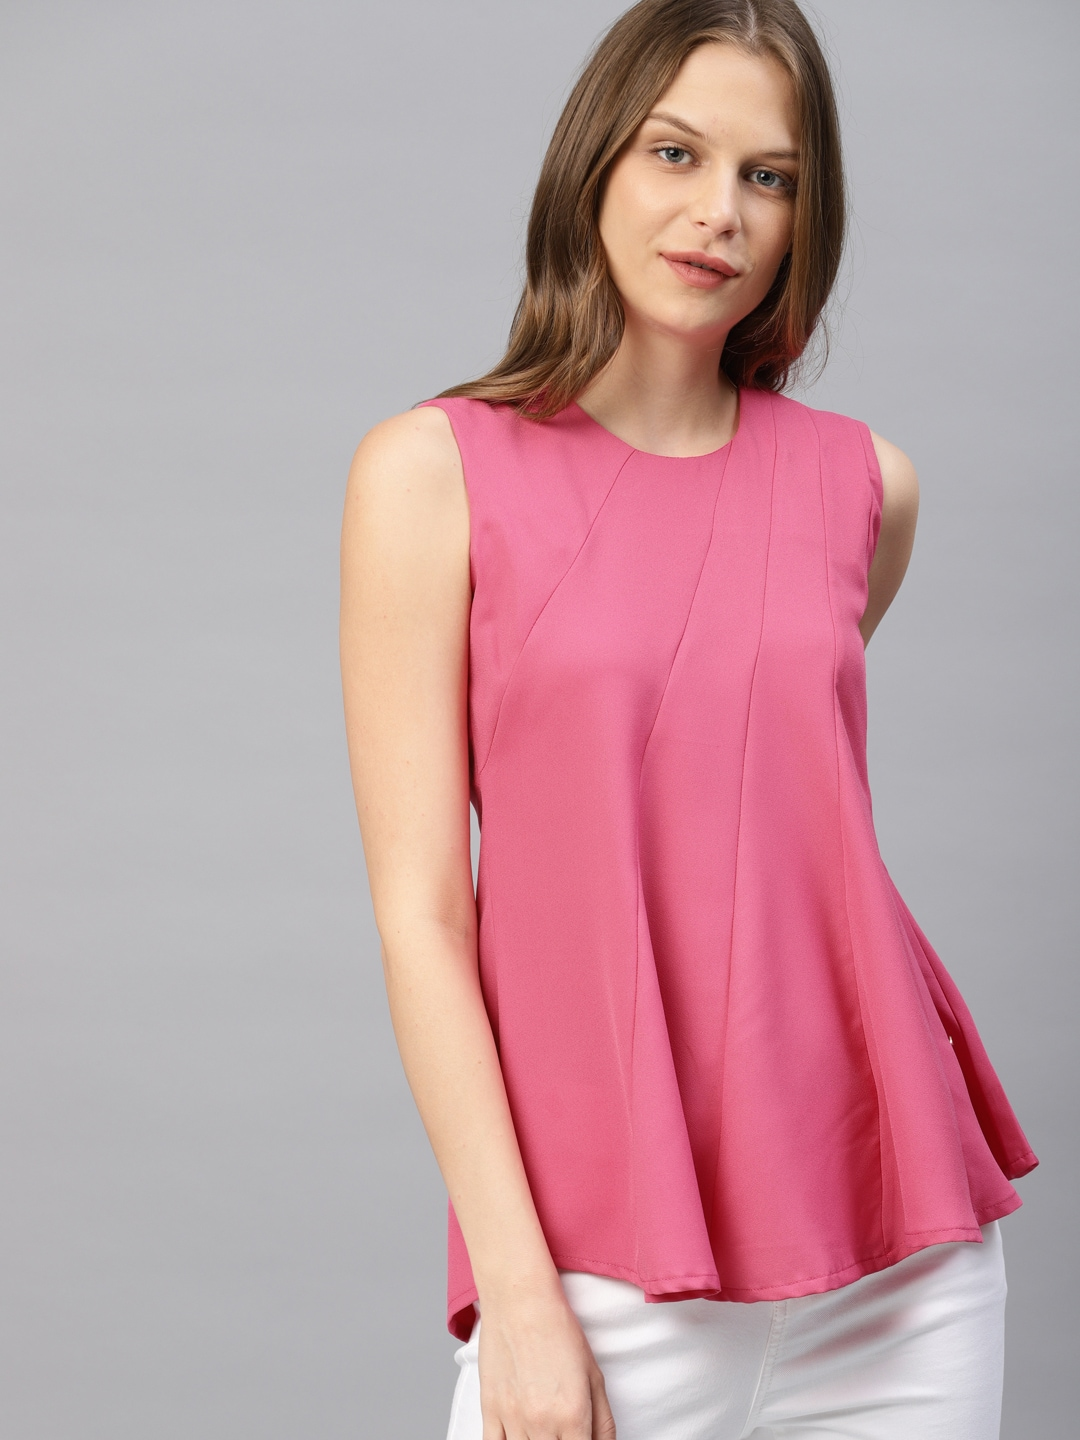 bd4337f69fa French Connection - Shop for FCUK Men & Women's Clothing | Myntra